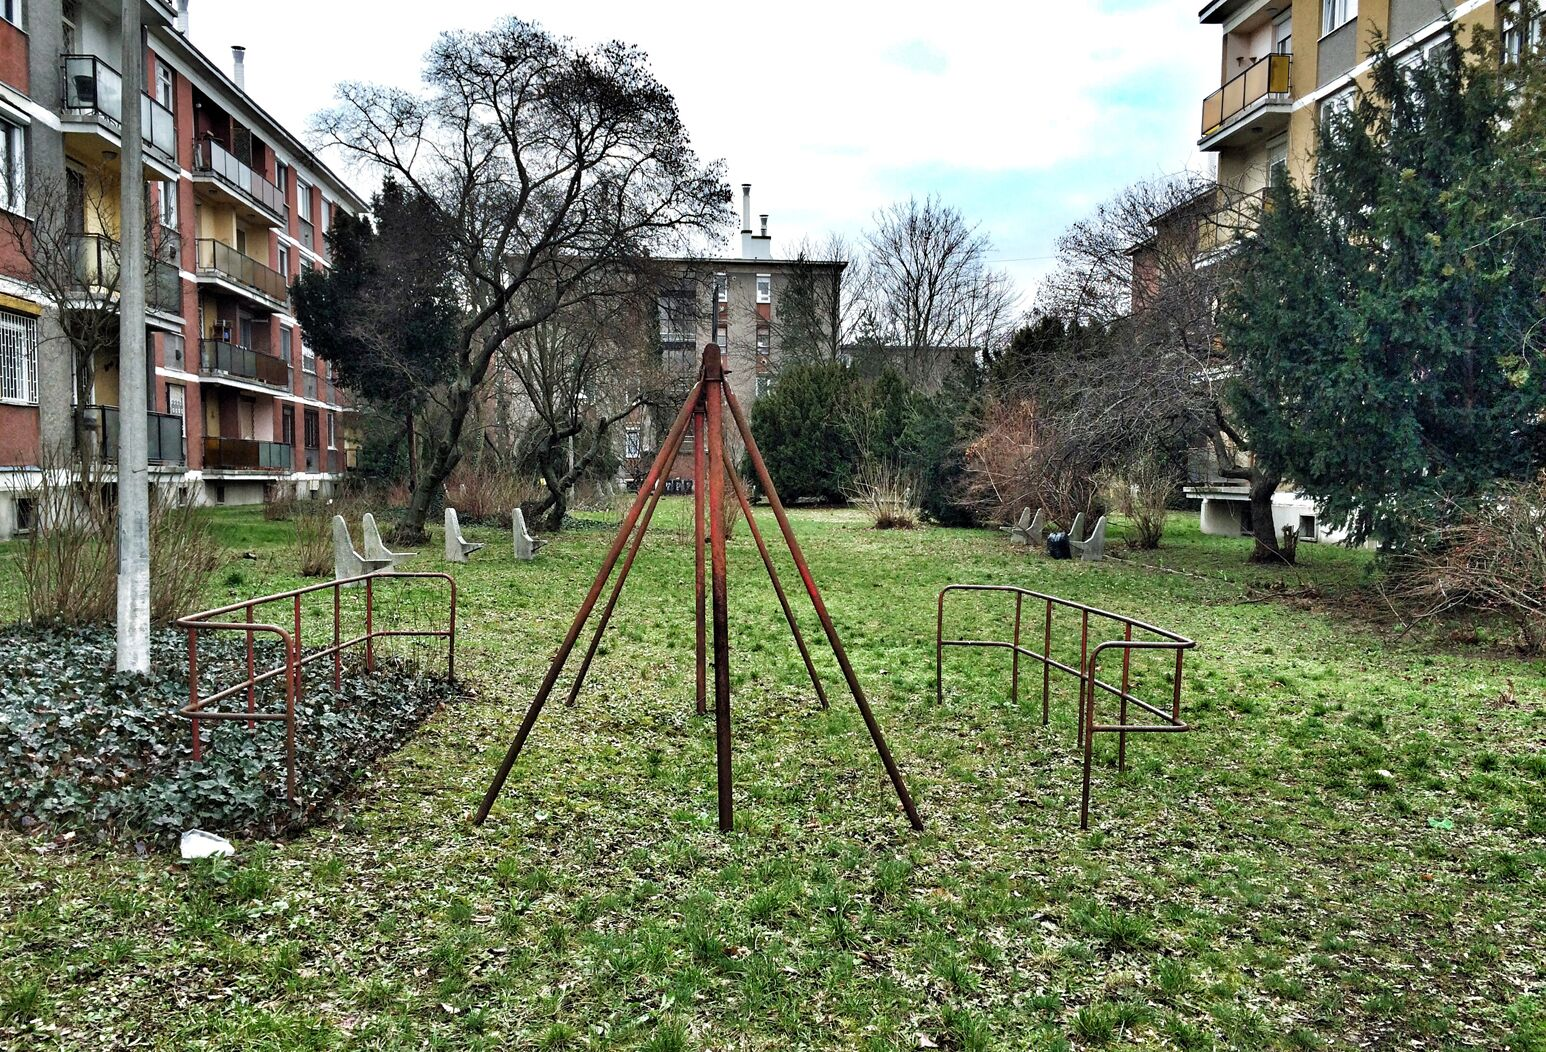 An old playground